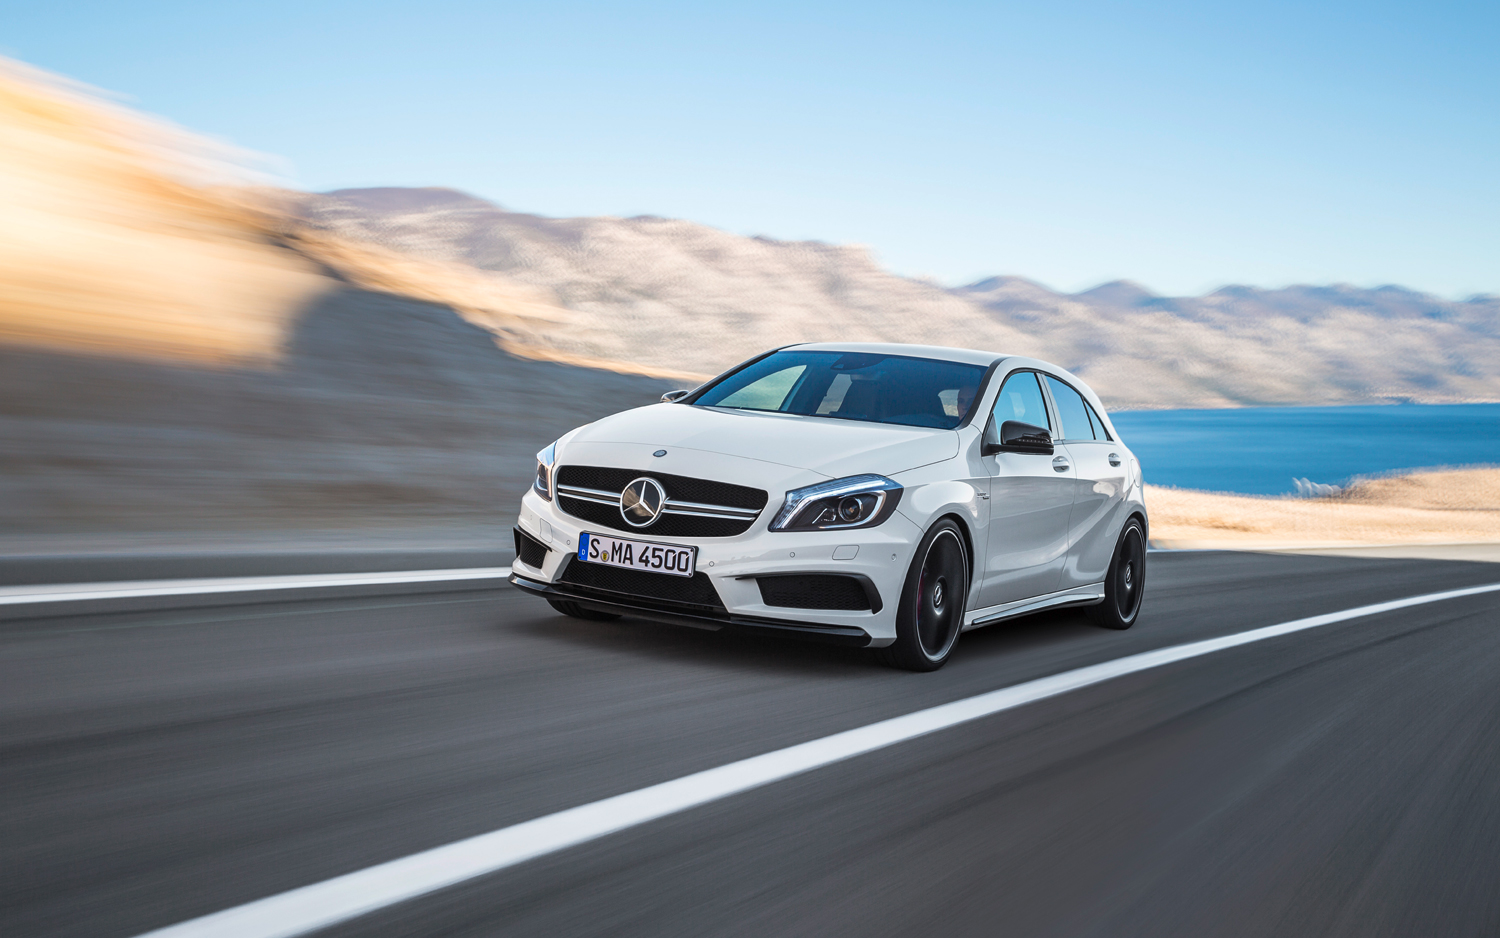 2014 mercedes benz a45 amg owner manual pdf for 2014 mercedes benz prices